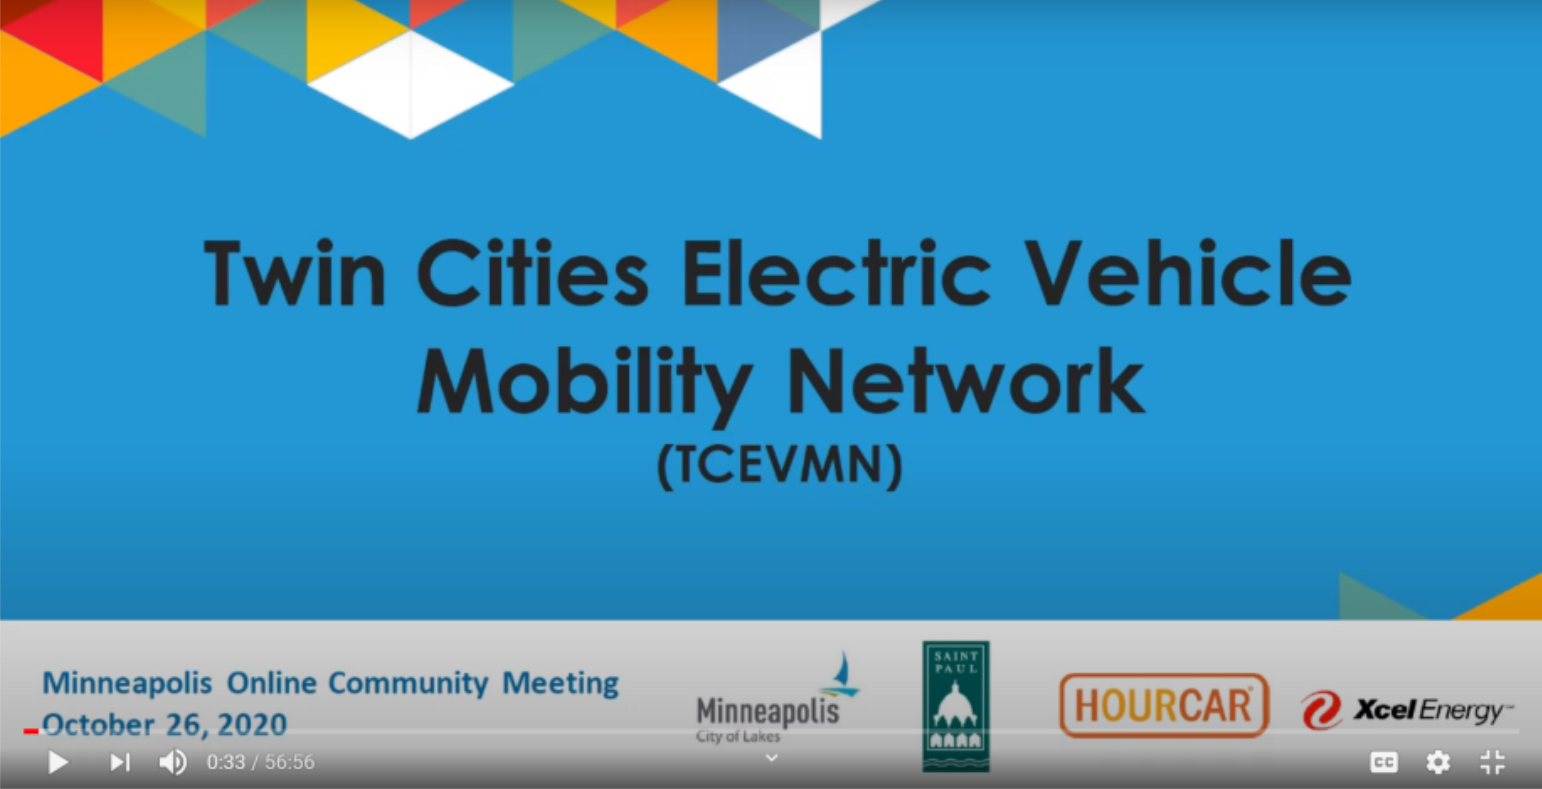 Front page image of the presentation for the Twin Cities Electric Vehicle Mobility Network Minneapolis Online Community Meeting